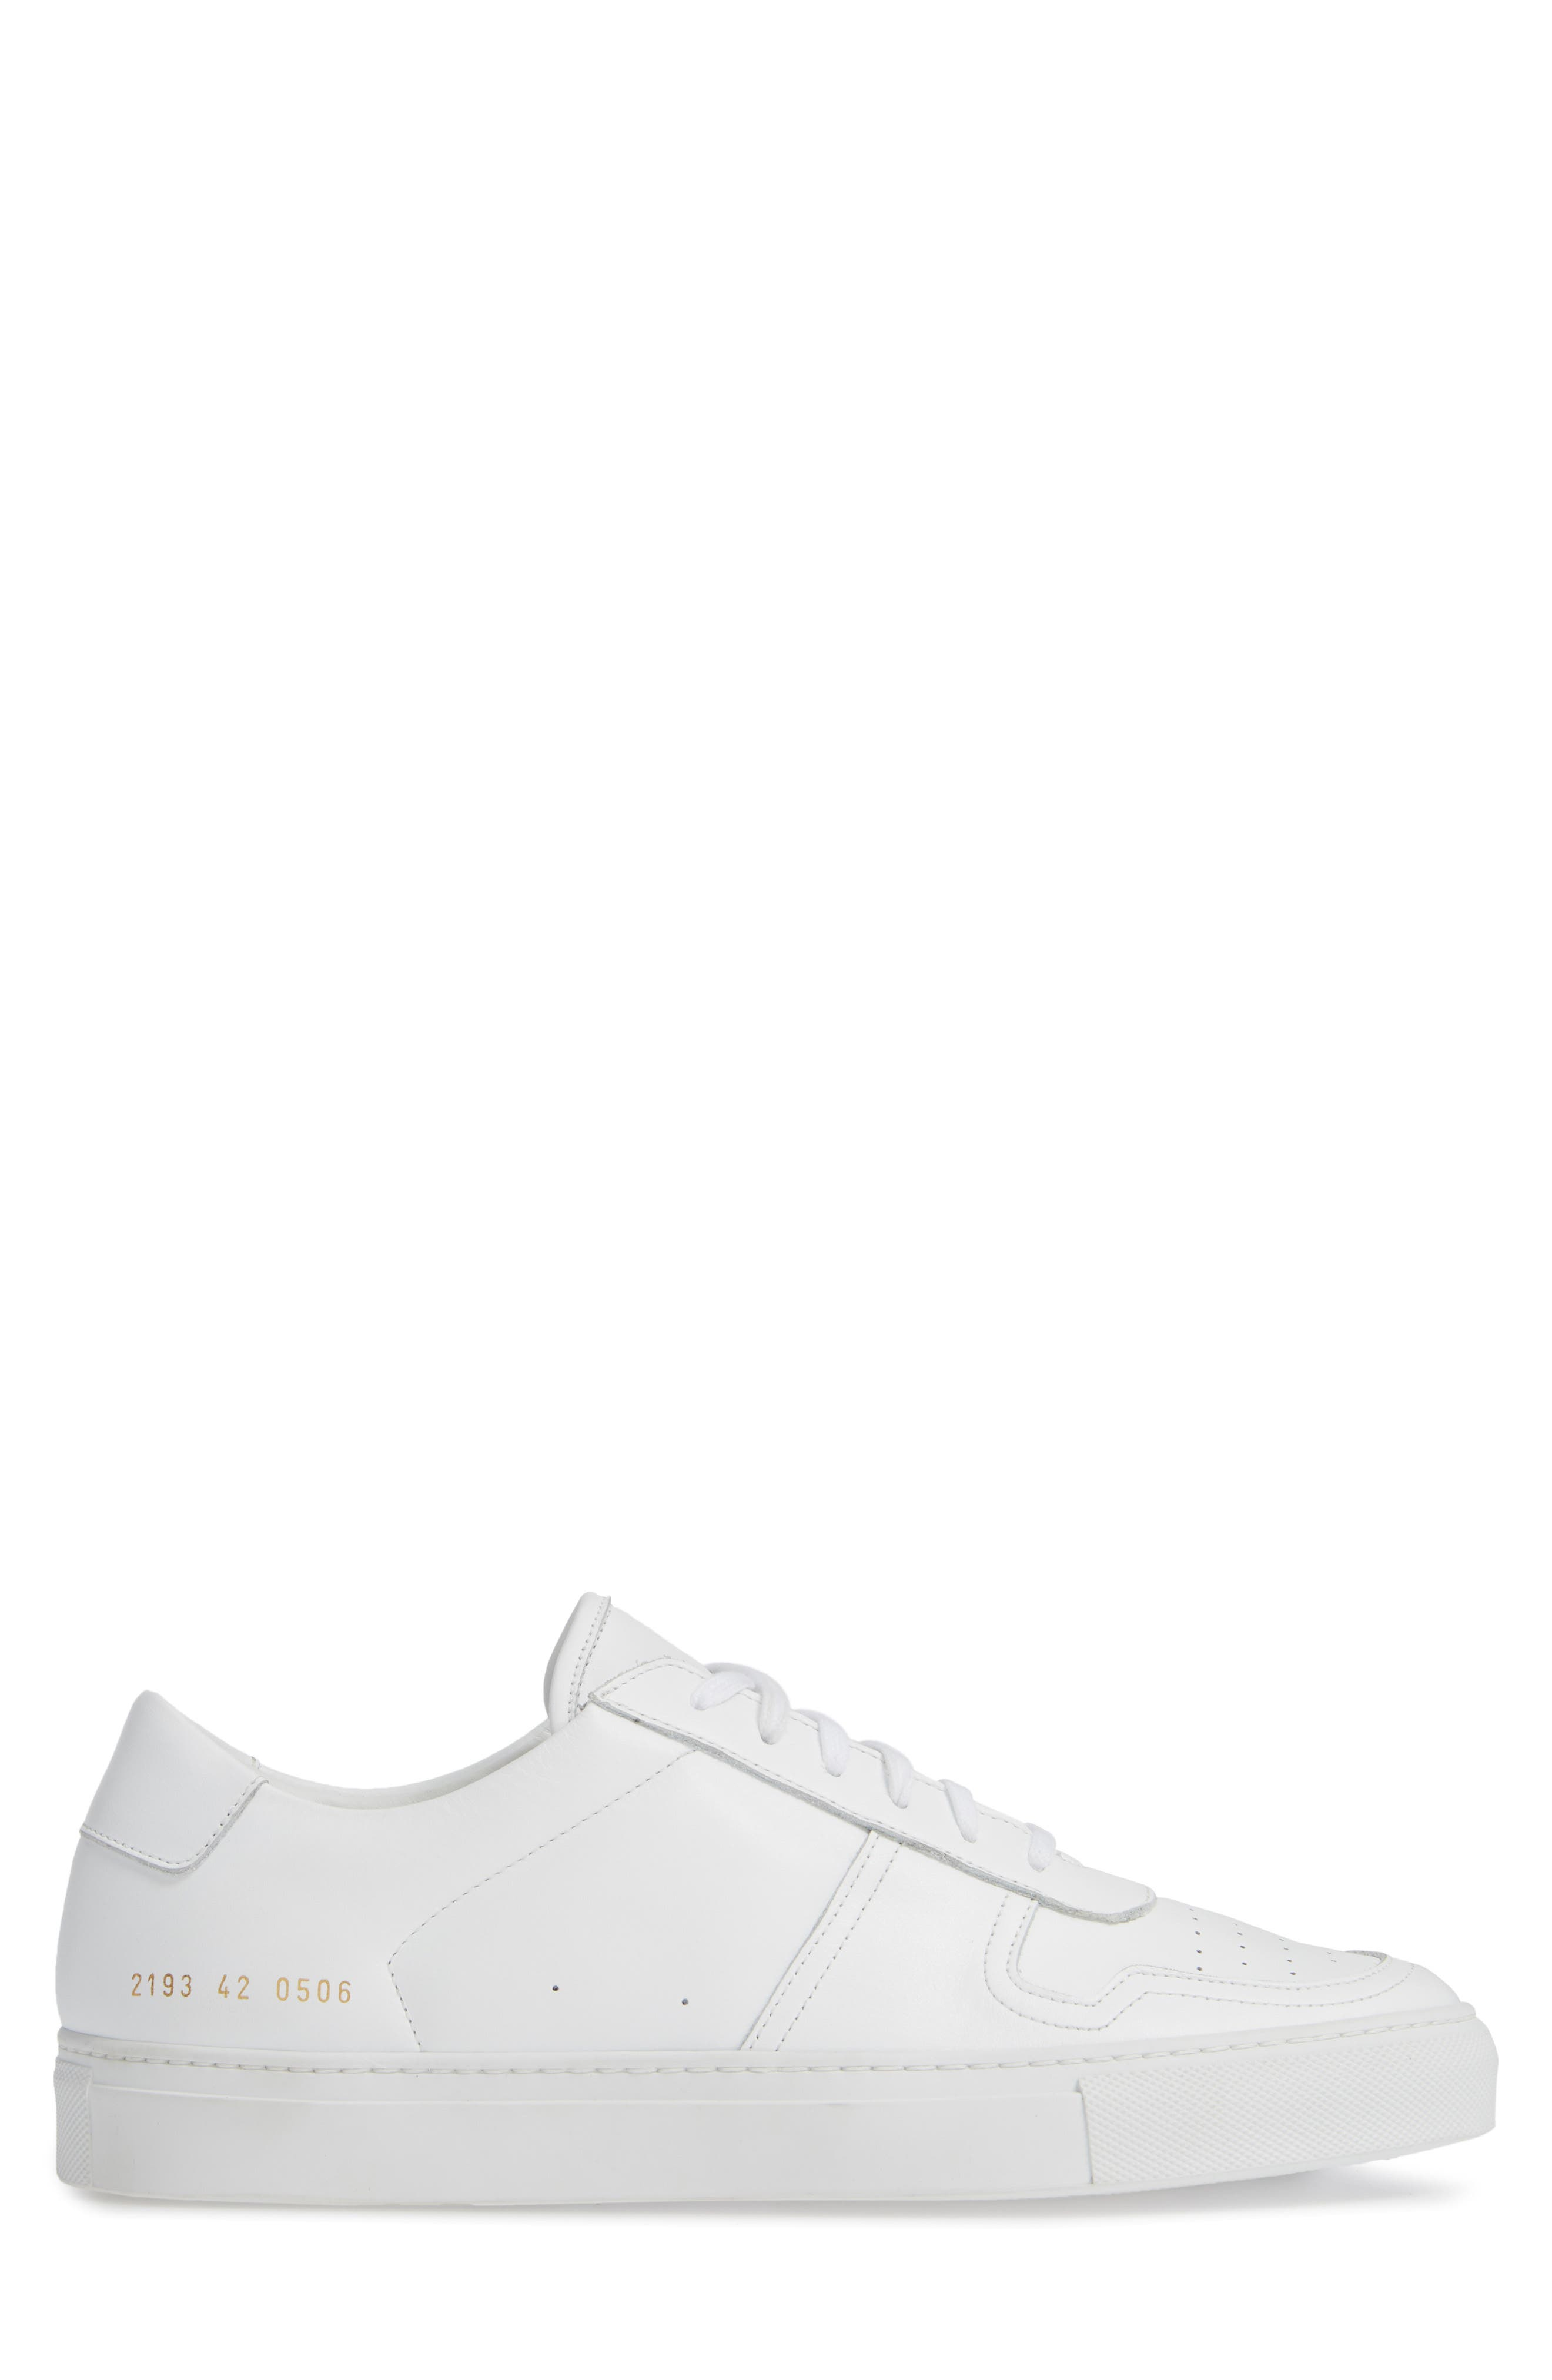 COMMON PROJECTS,                             Bball Low Top Sneaker,                             Alternate thumbnail 3, color,                             WHITE